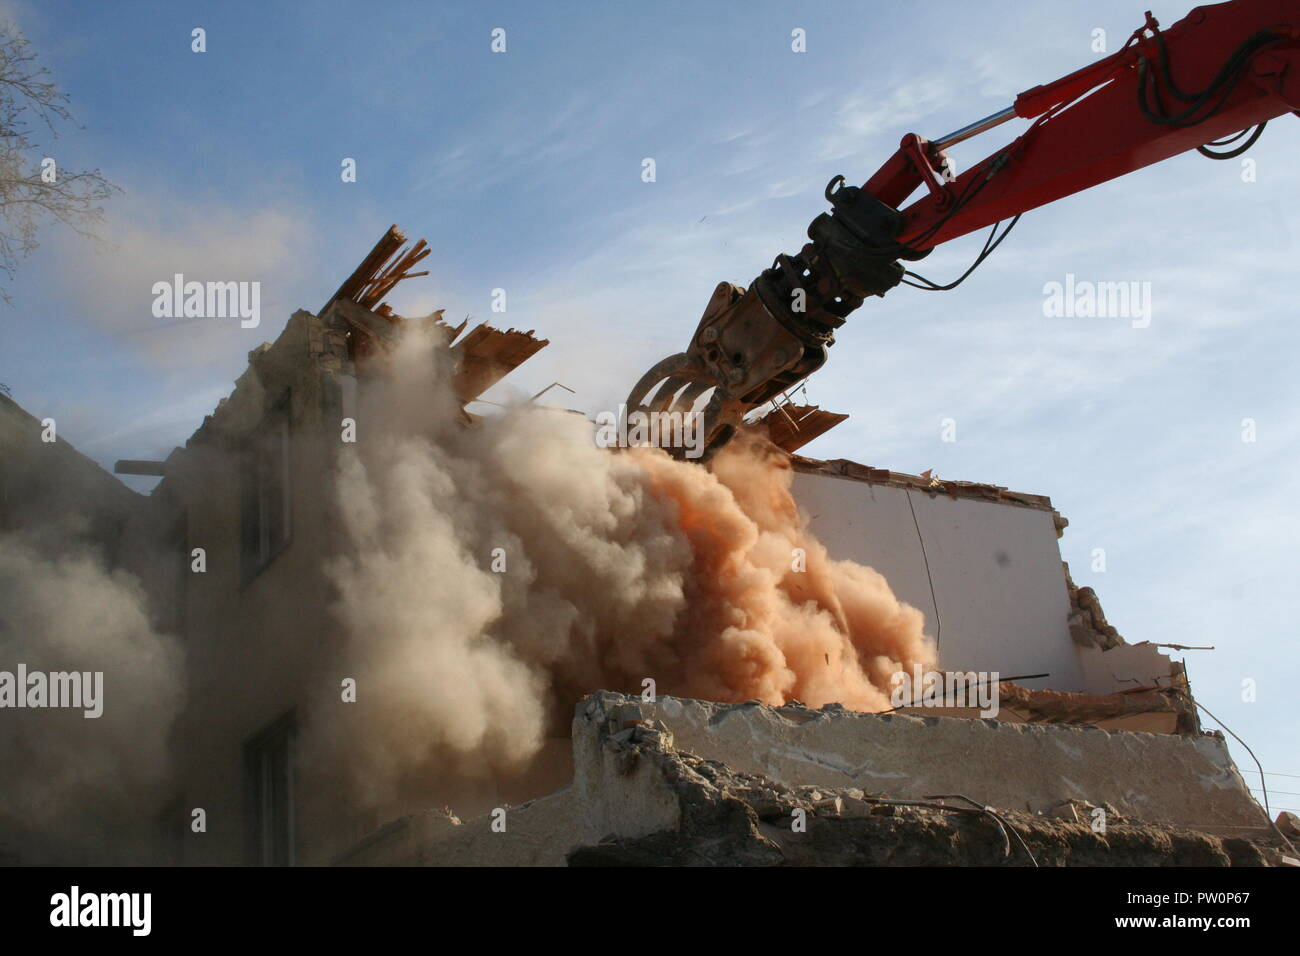 Tear down an old building with a excavator - Stock Image